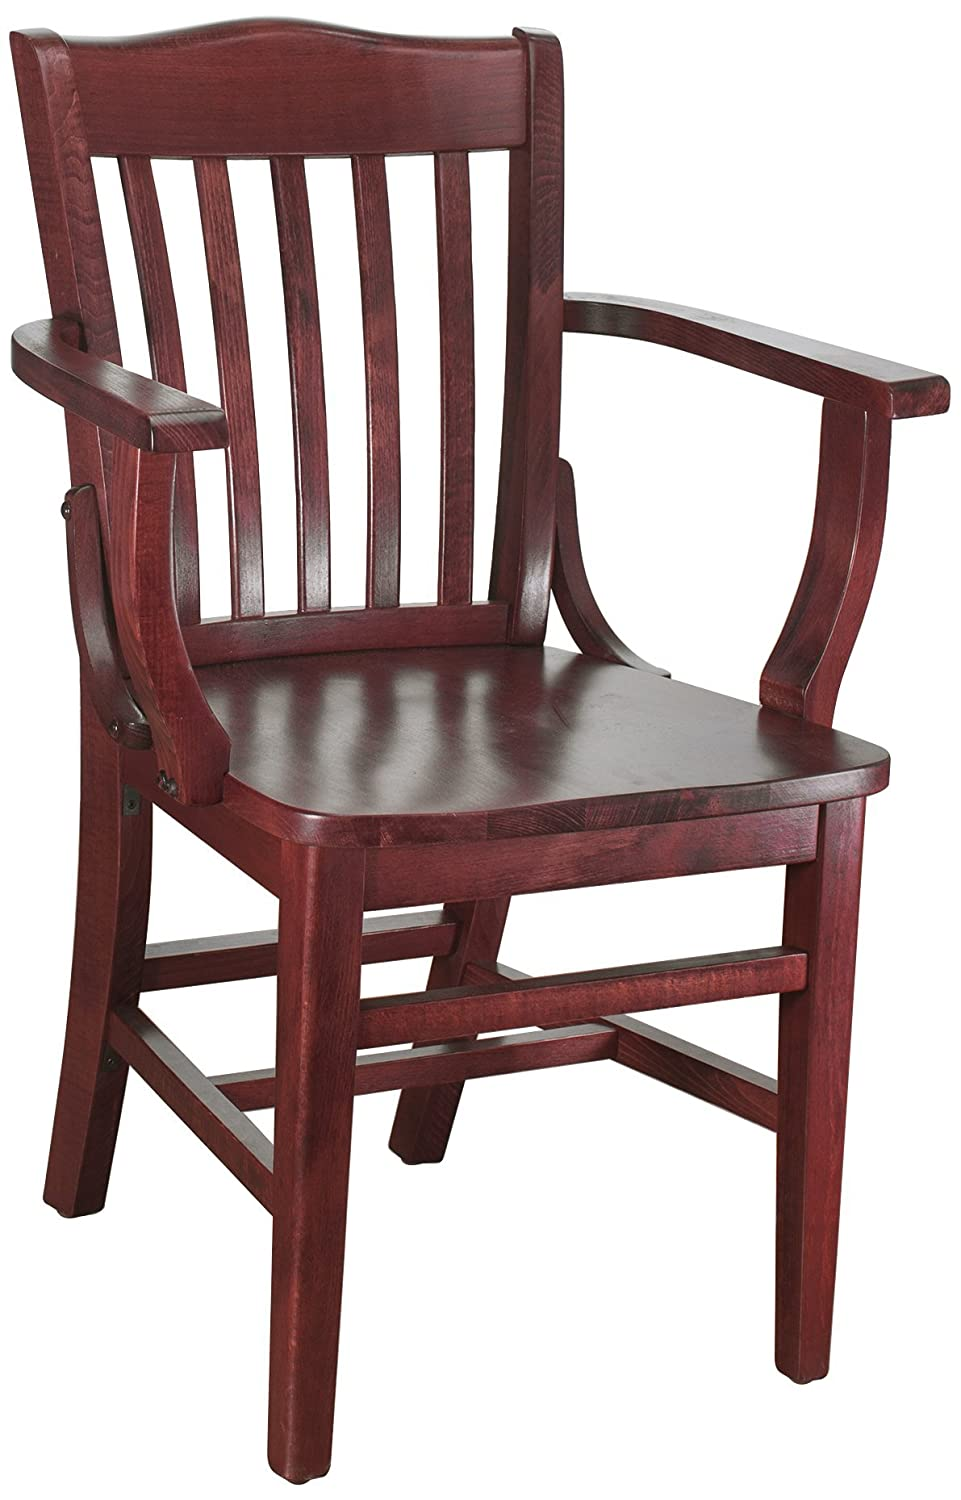 Mahogany Beechwood Mountain BSD-2A-N Solid Beech Wood Arm Chair in Natural for Kitchen & Dining, NA